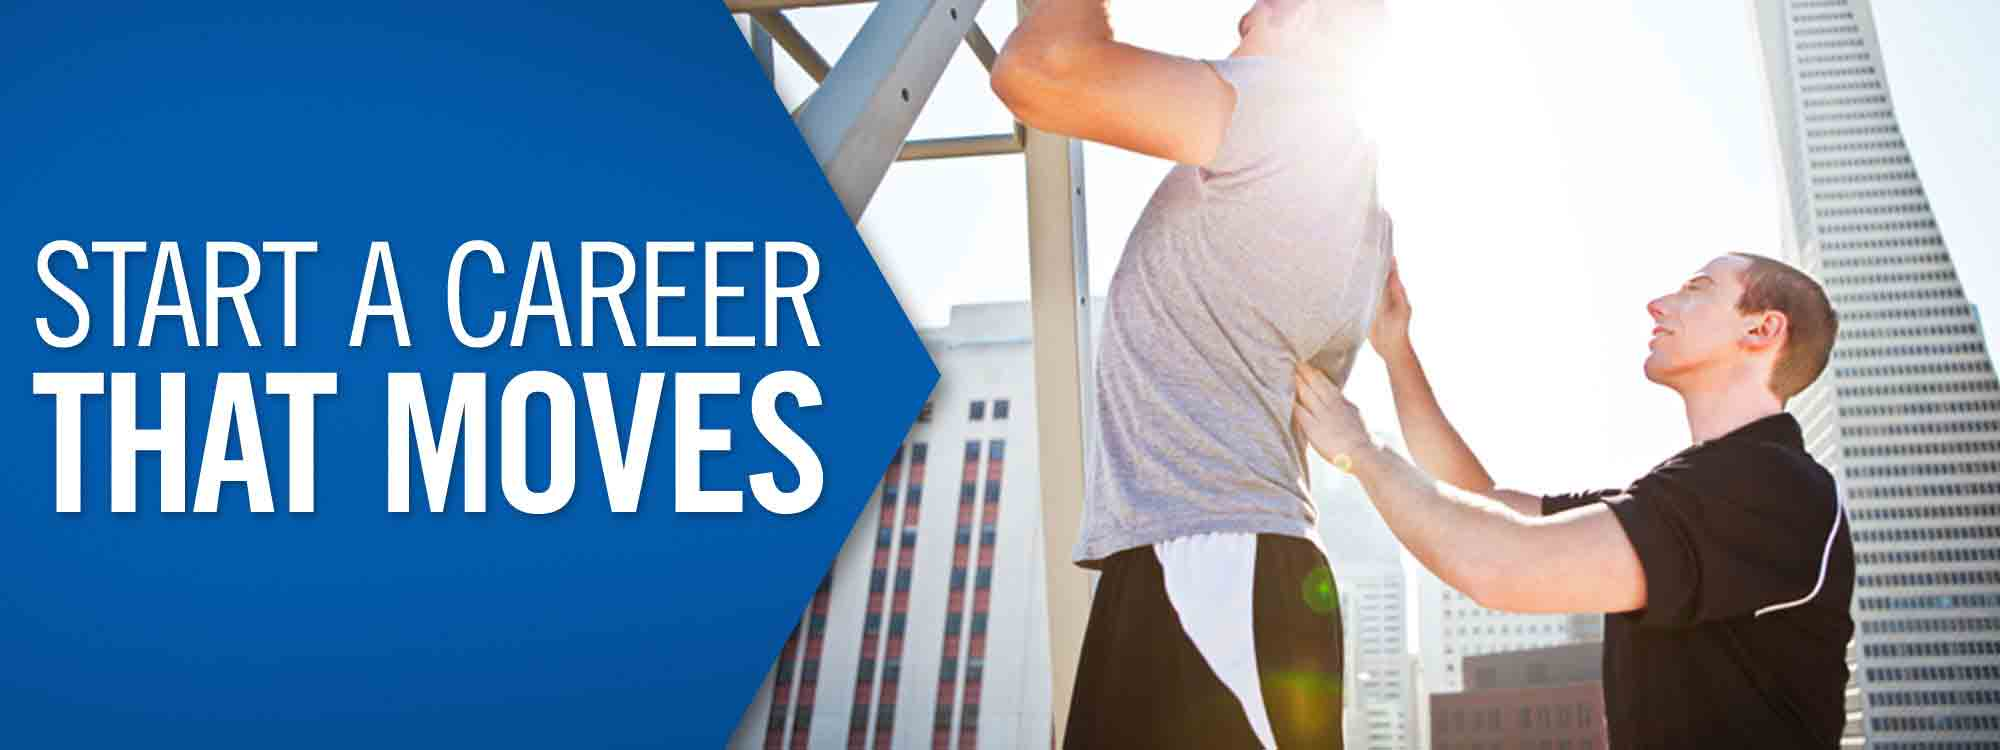 Start A Career That Moves